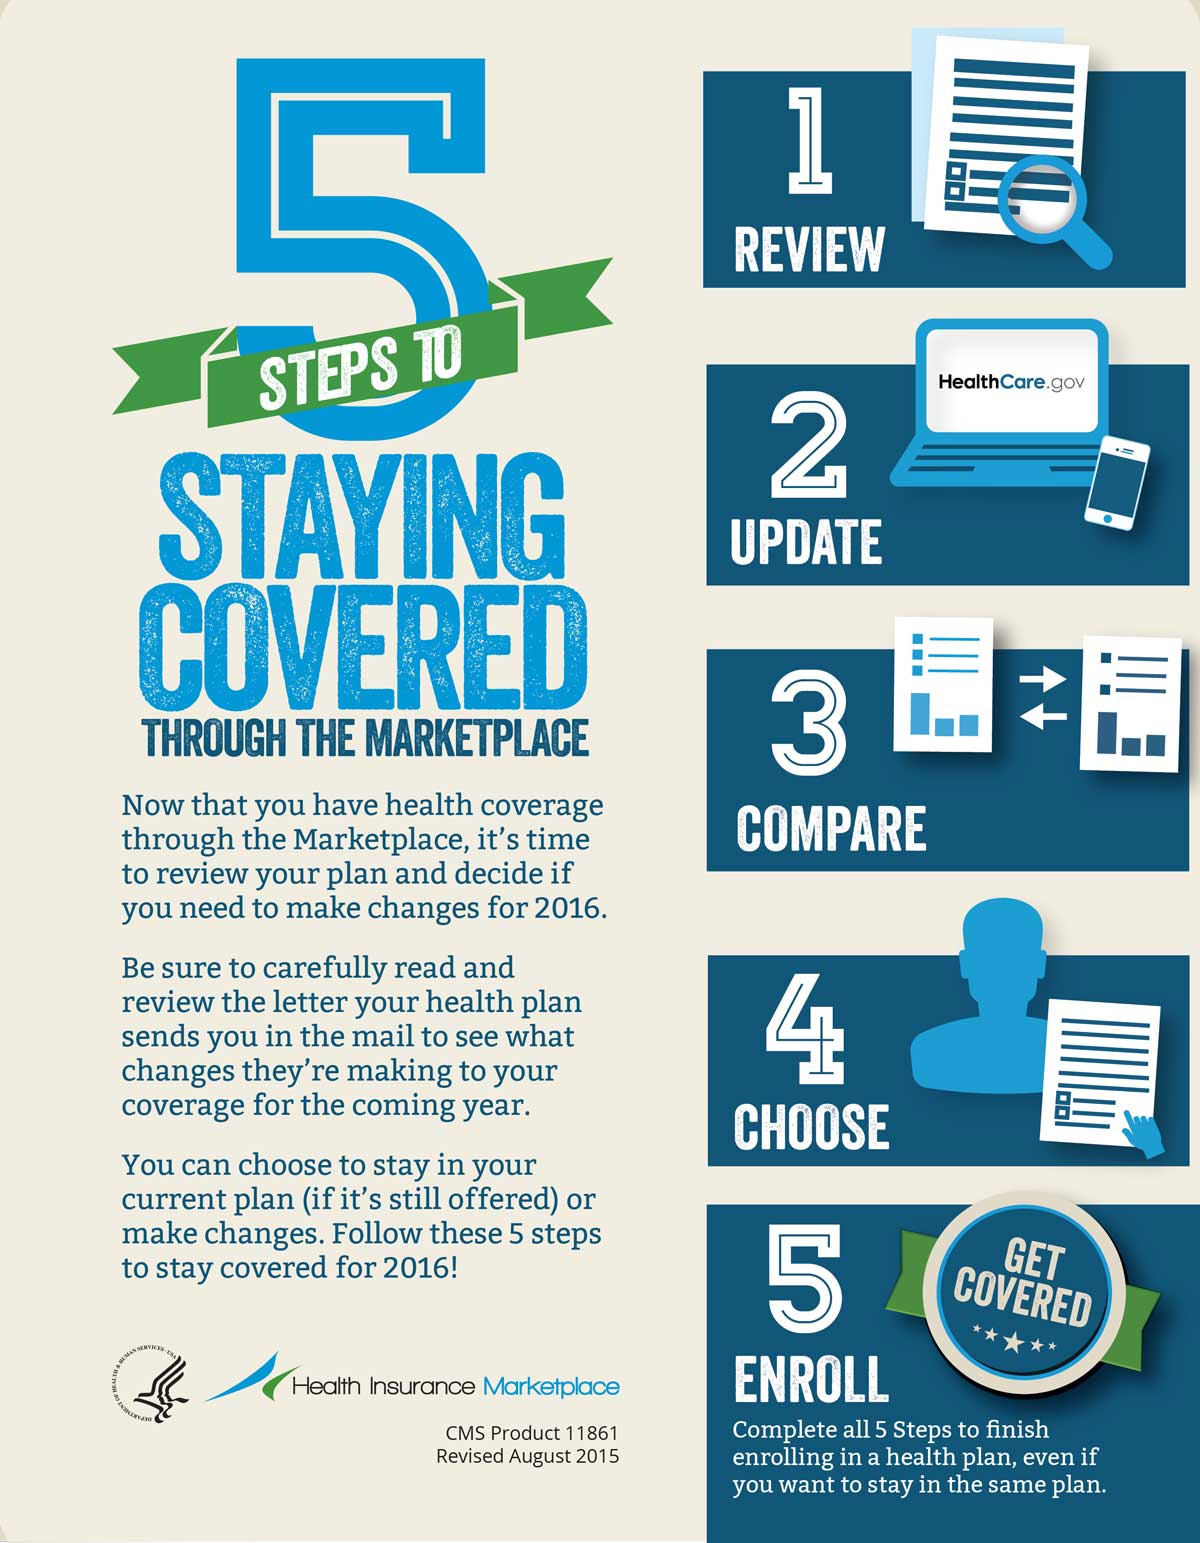 5 Steps to Staying Covered Through the Marketiplace